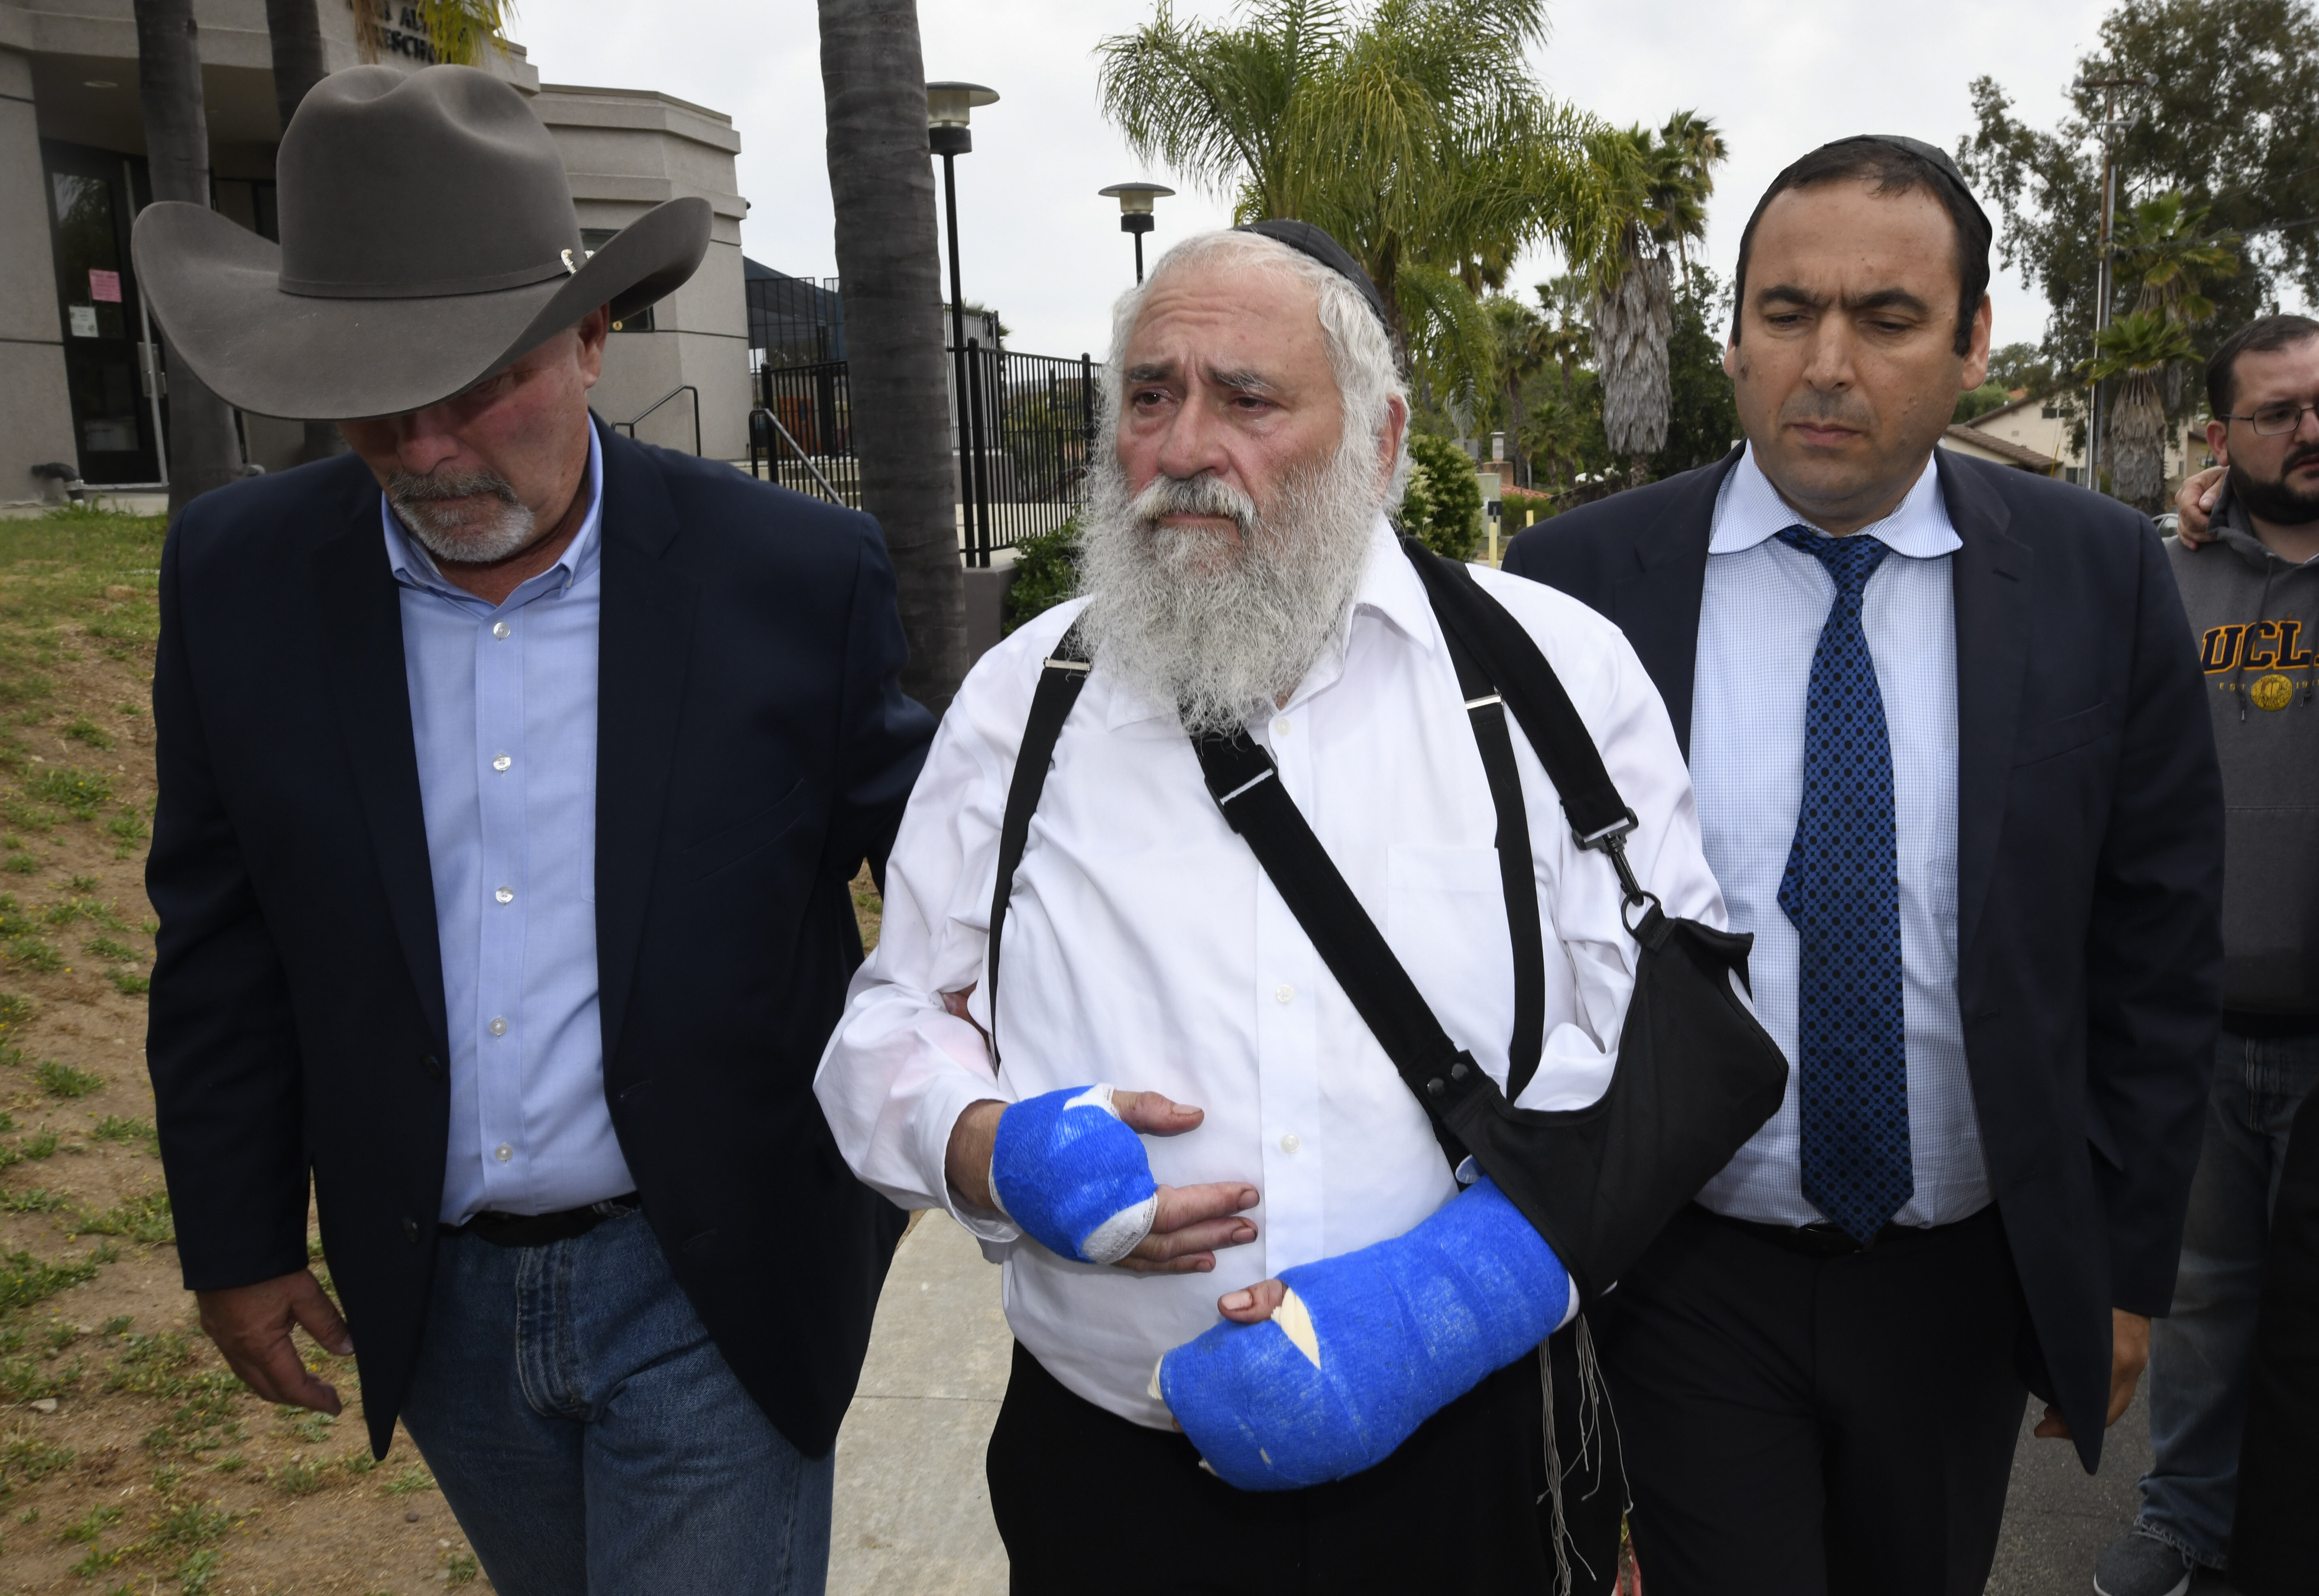 Rabbi Yisroel Goldstein said he asked a Border Patrol agent to carry his firearm with him while attending services, reasoning